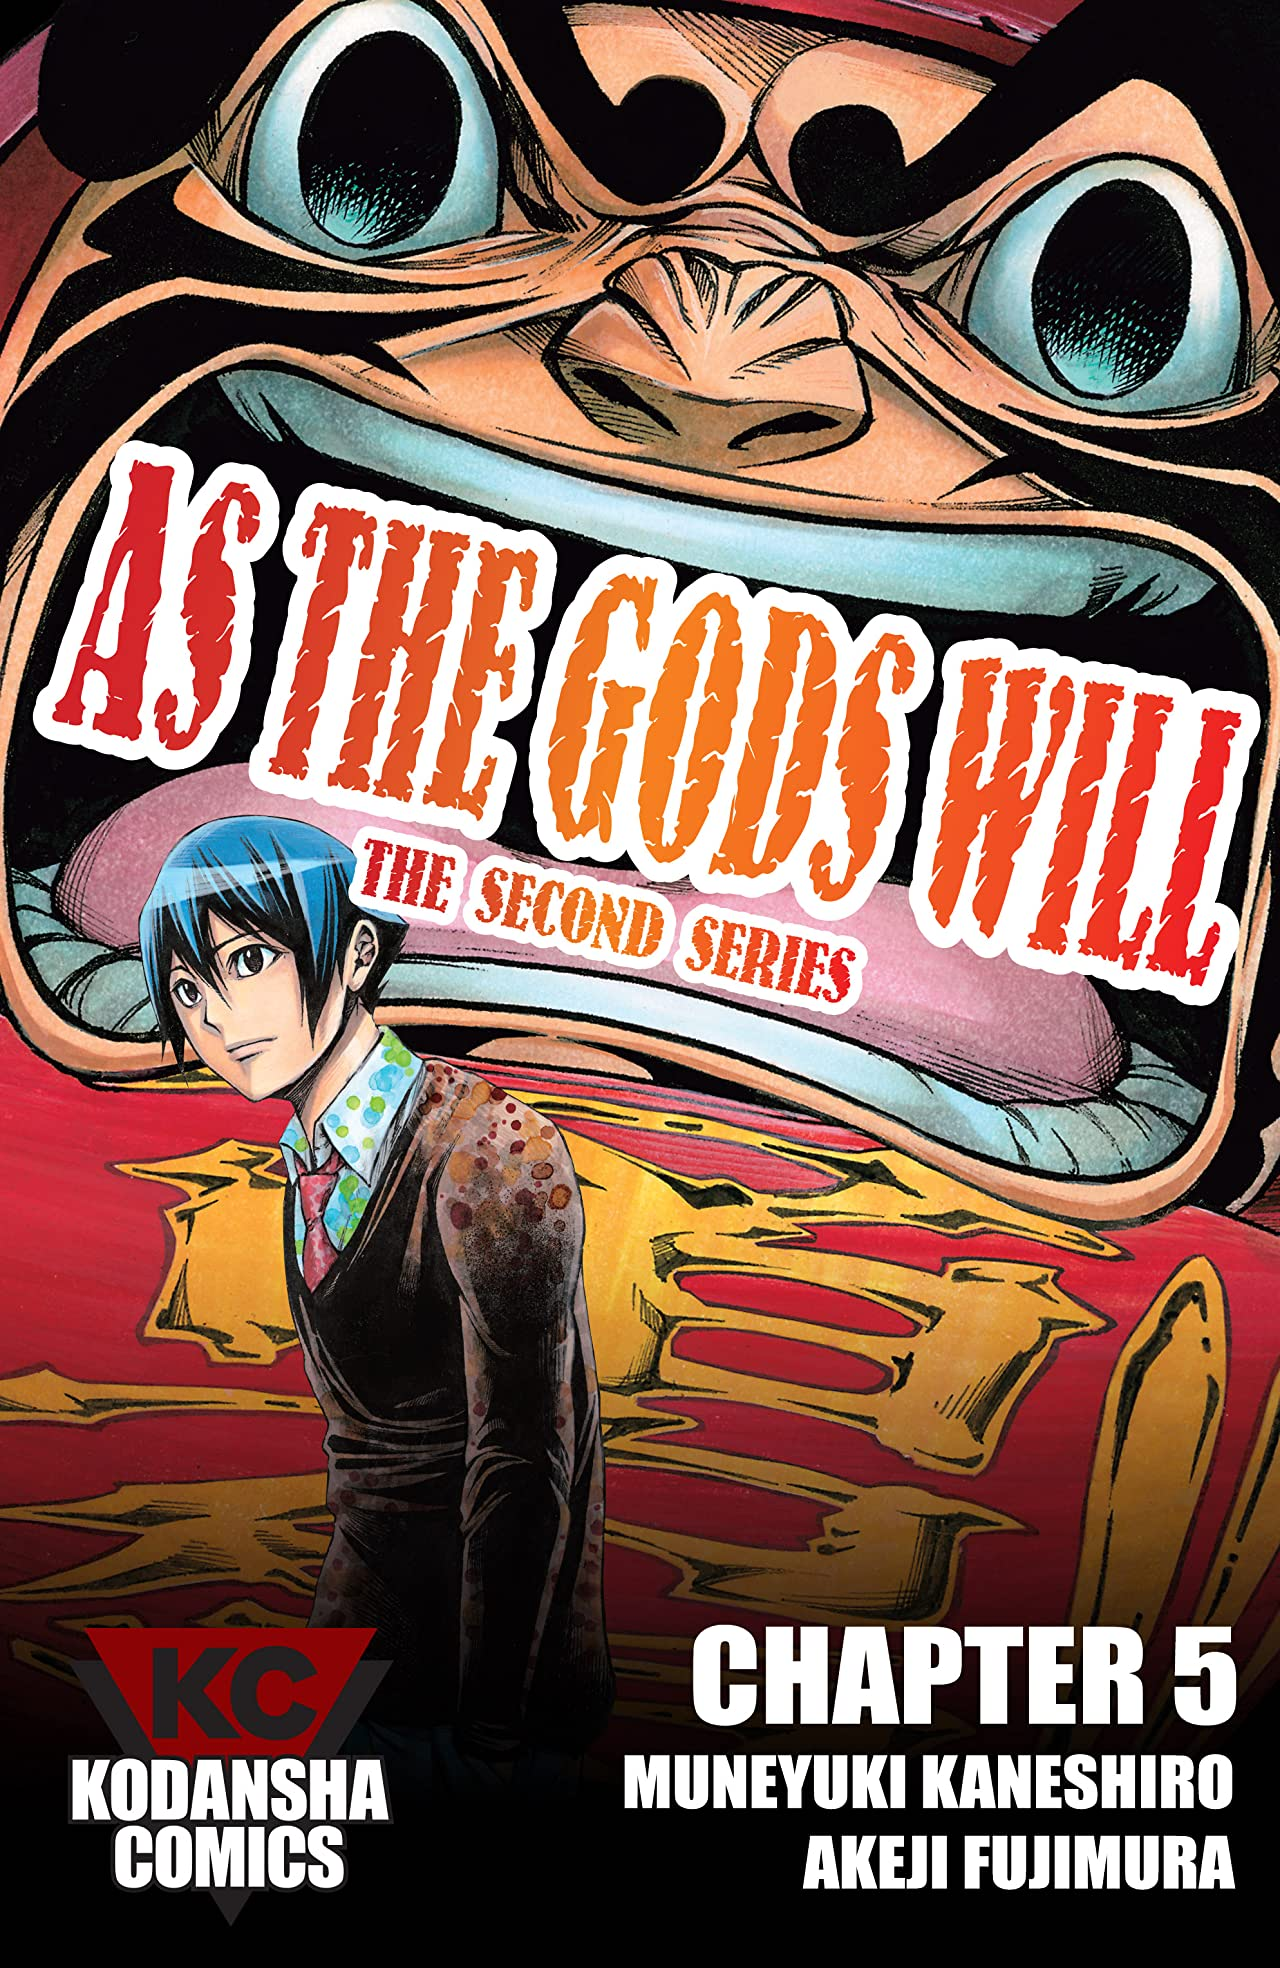 As The Gods Will: The Second Series #5